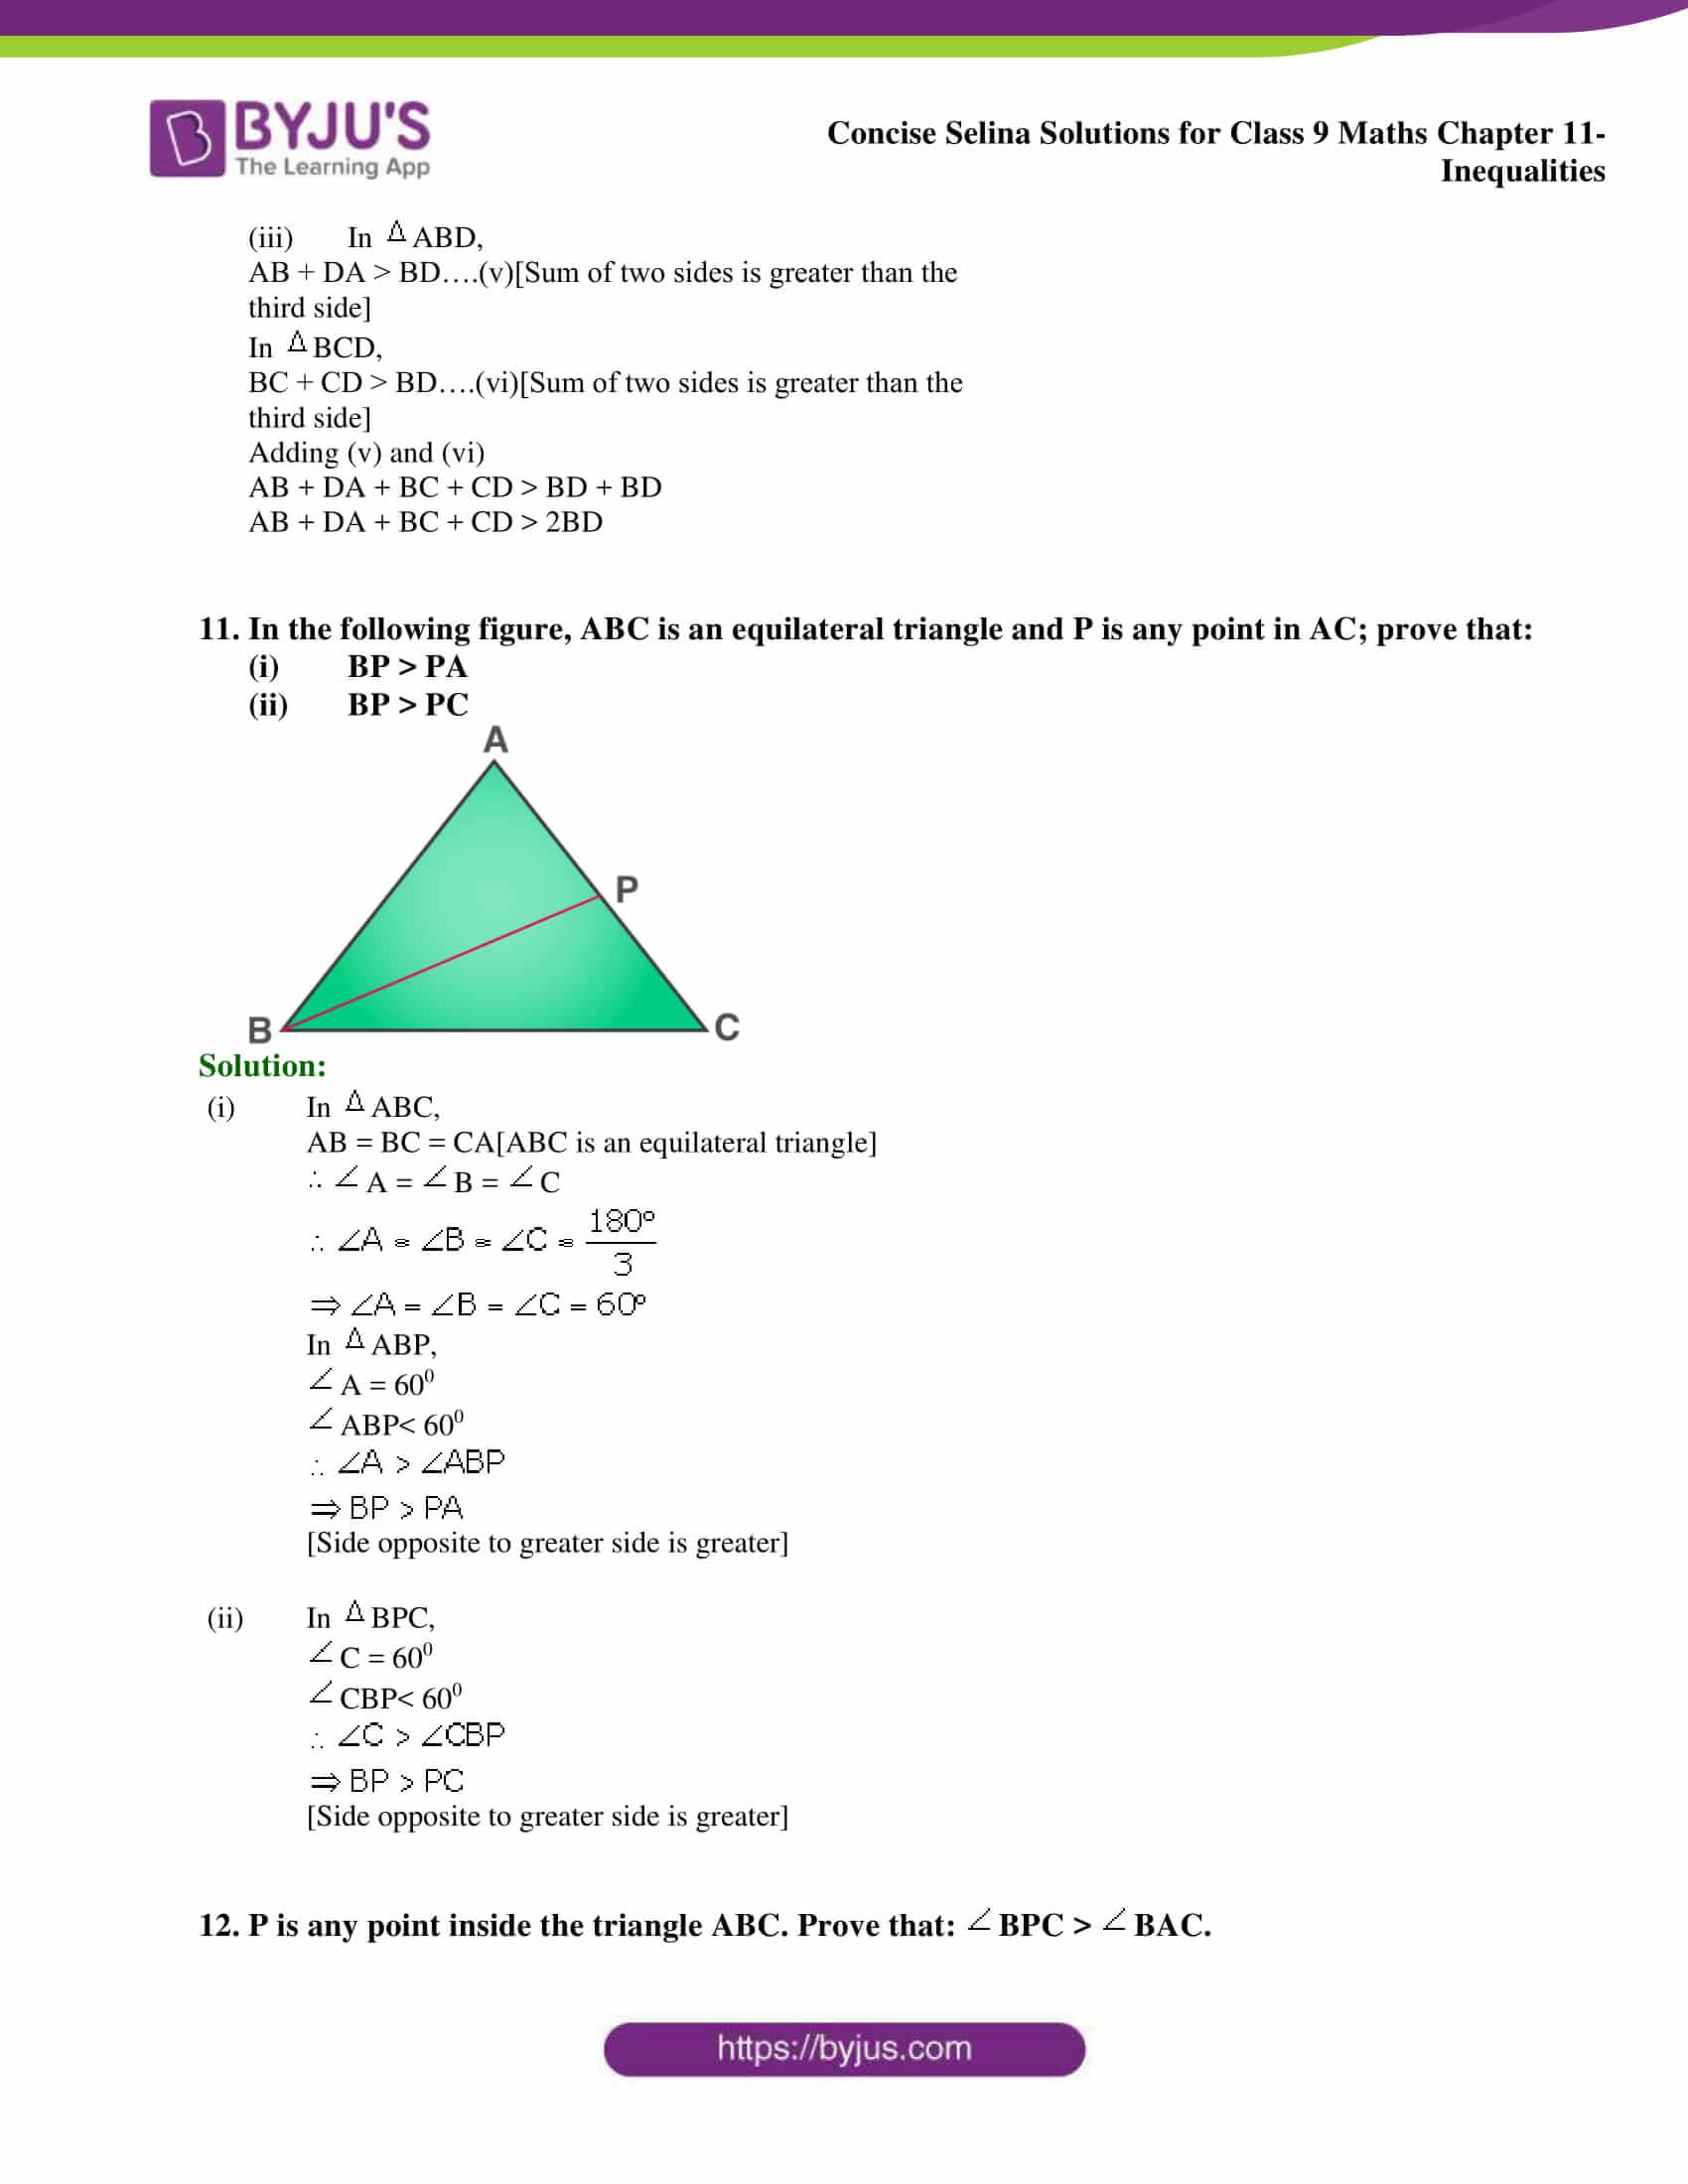 selina Solutions for Class 9 Maths Chapter 11 part 10